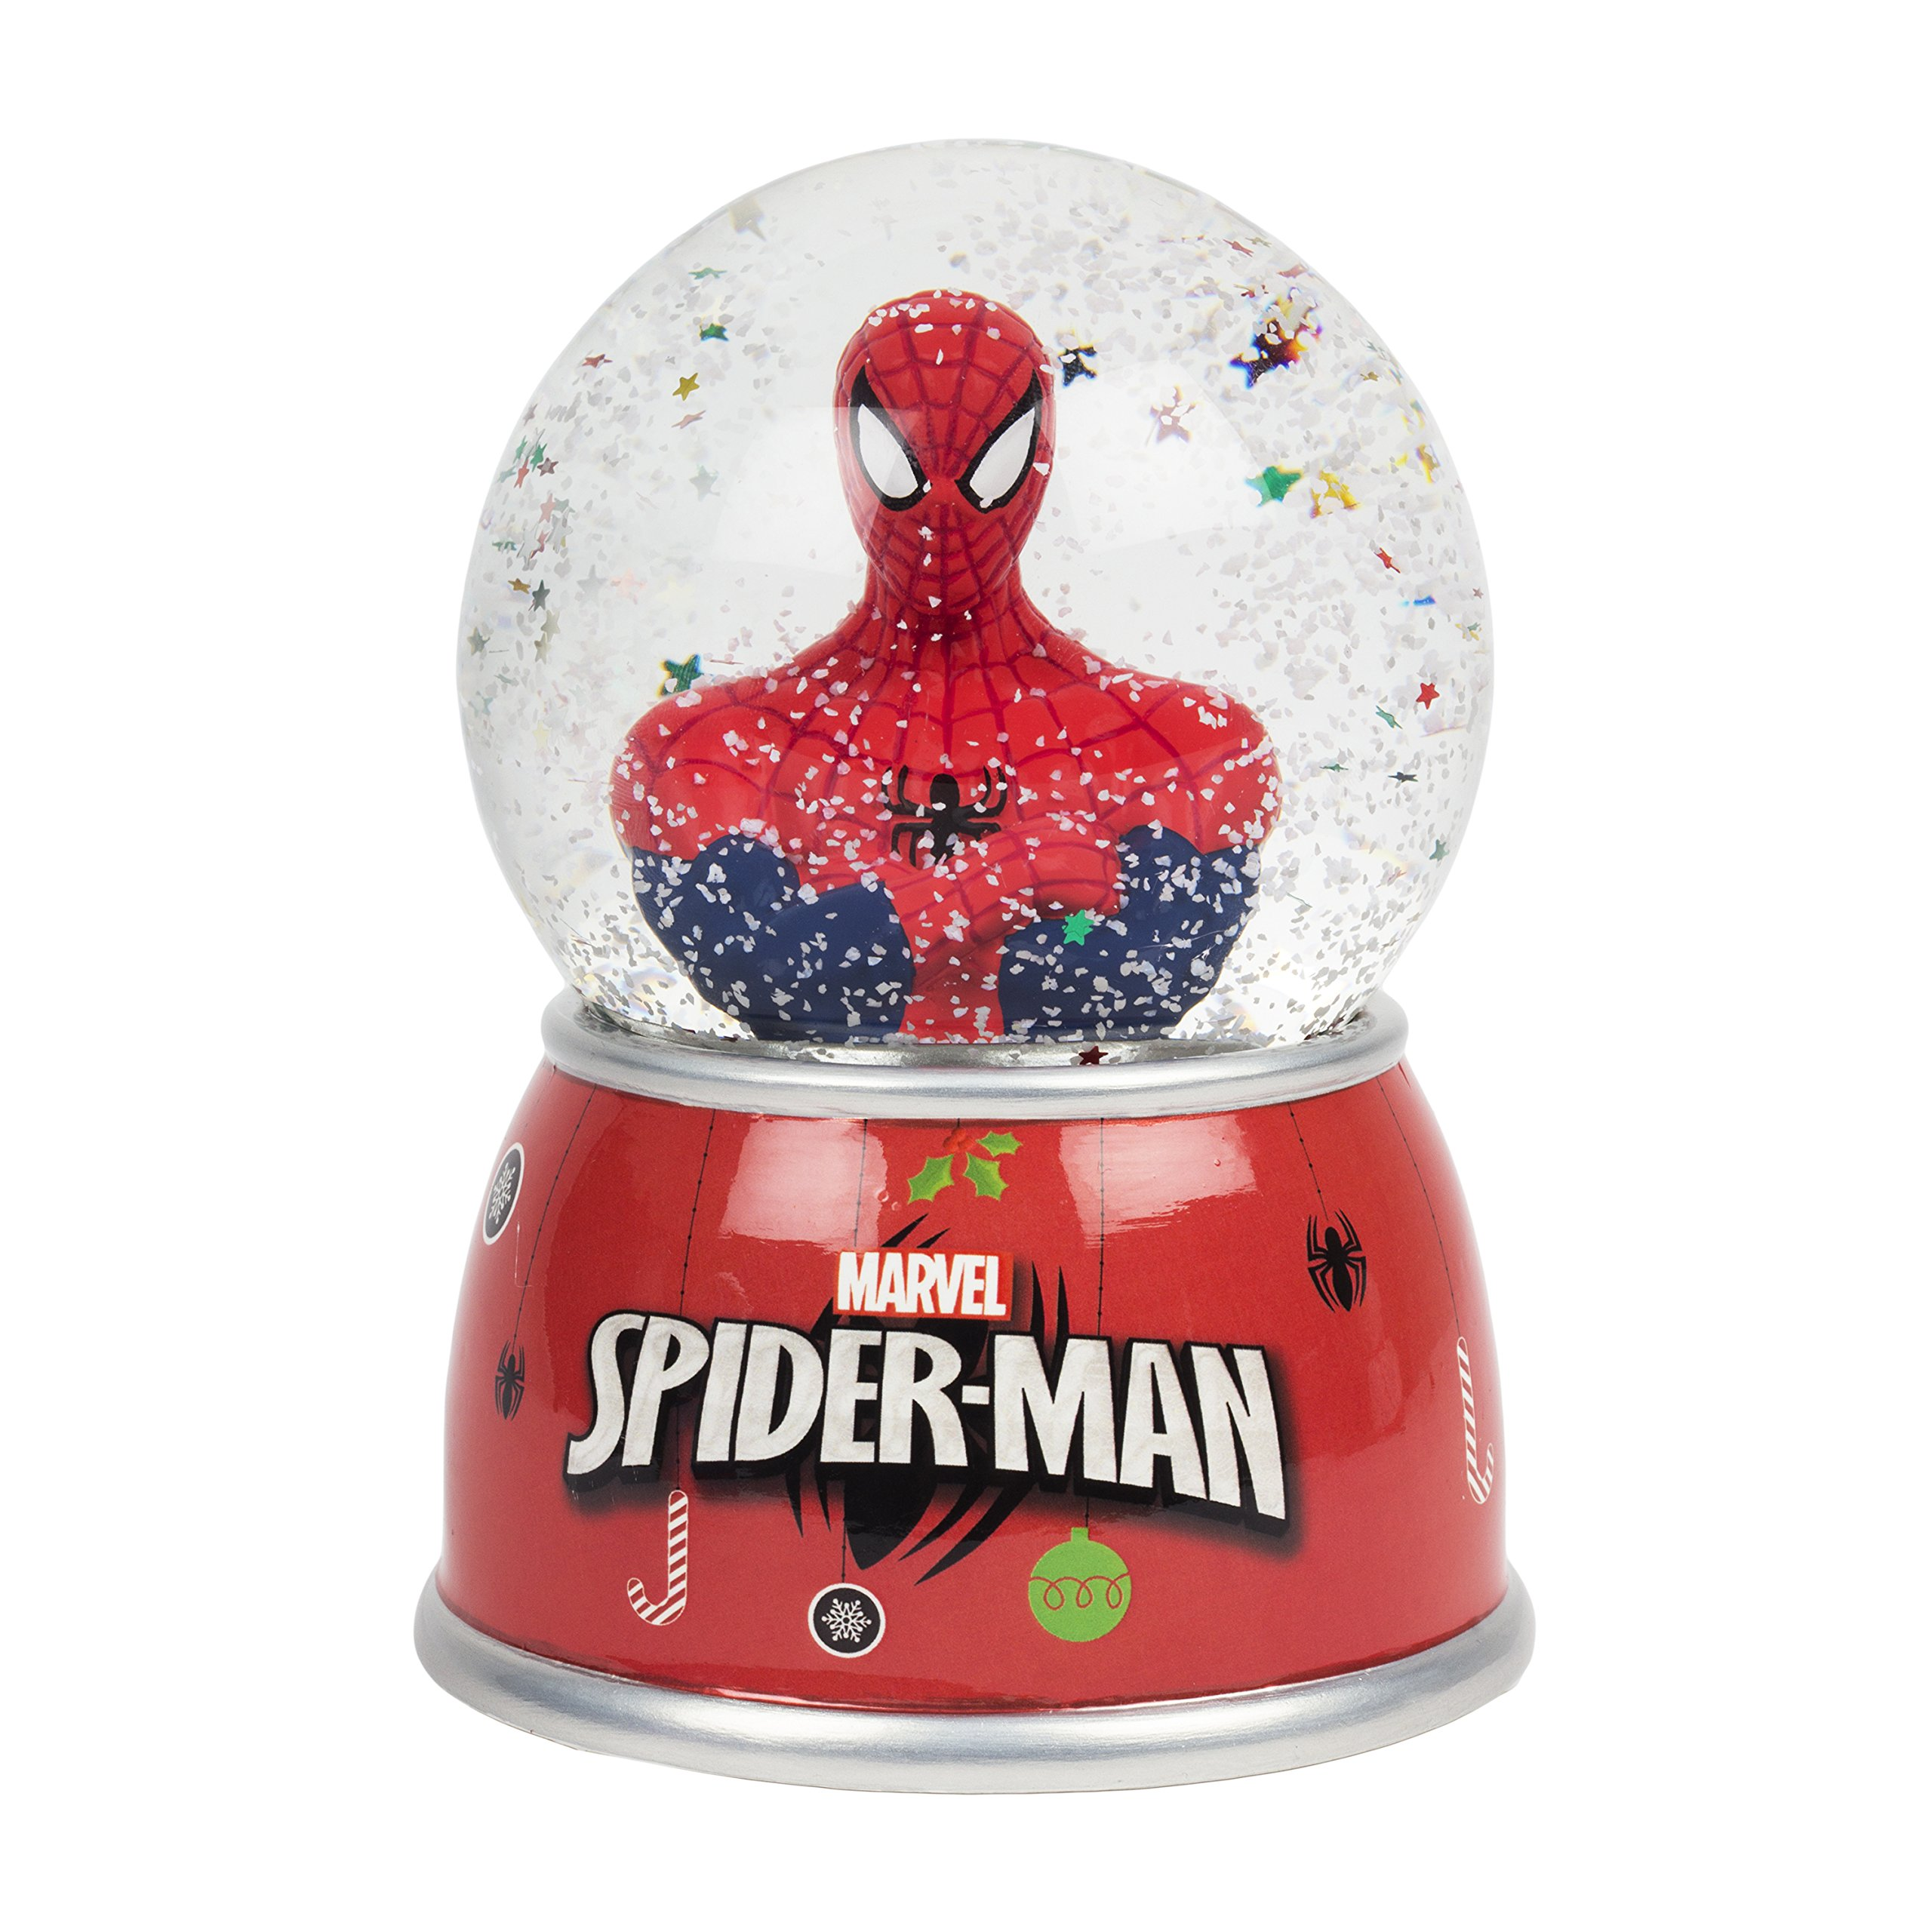 FAB Starpoint Marvel Spiderman Red Christmas Snow Globe Coin Bank